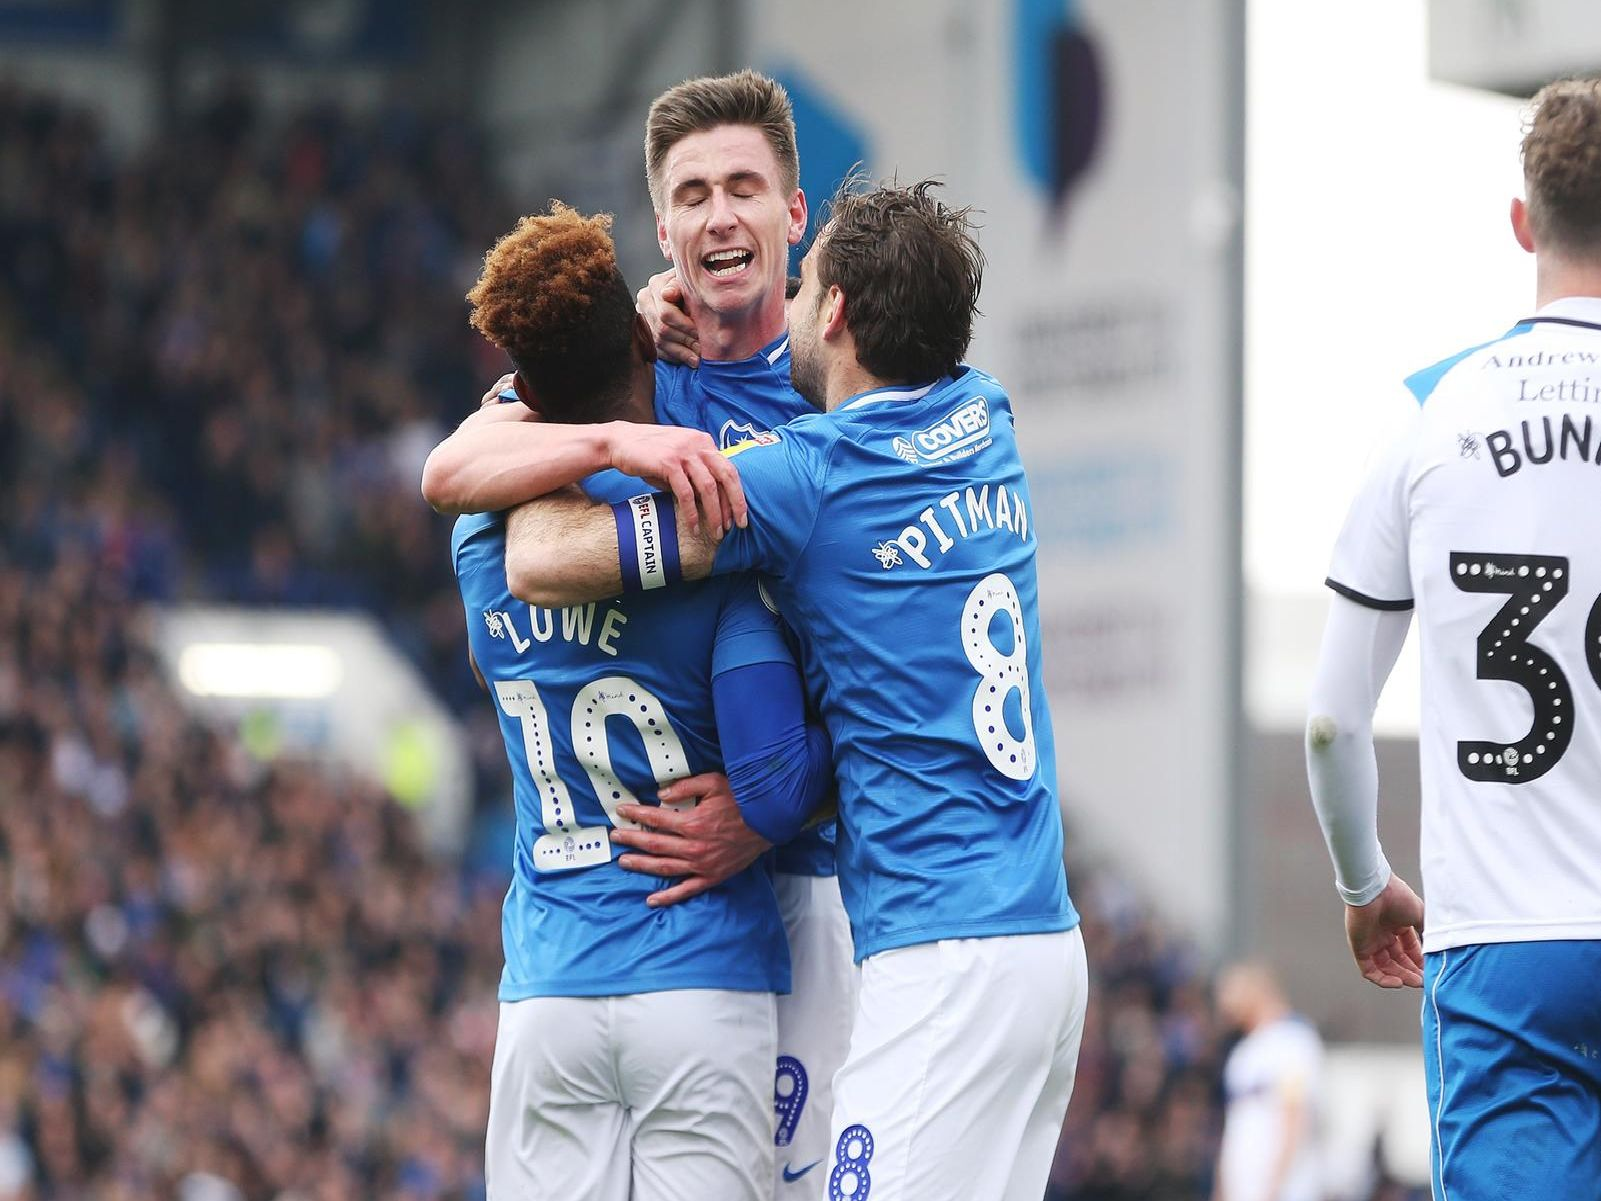 Action from the first half of Pompey's clash against Rochdale at Fratton Park.